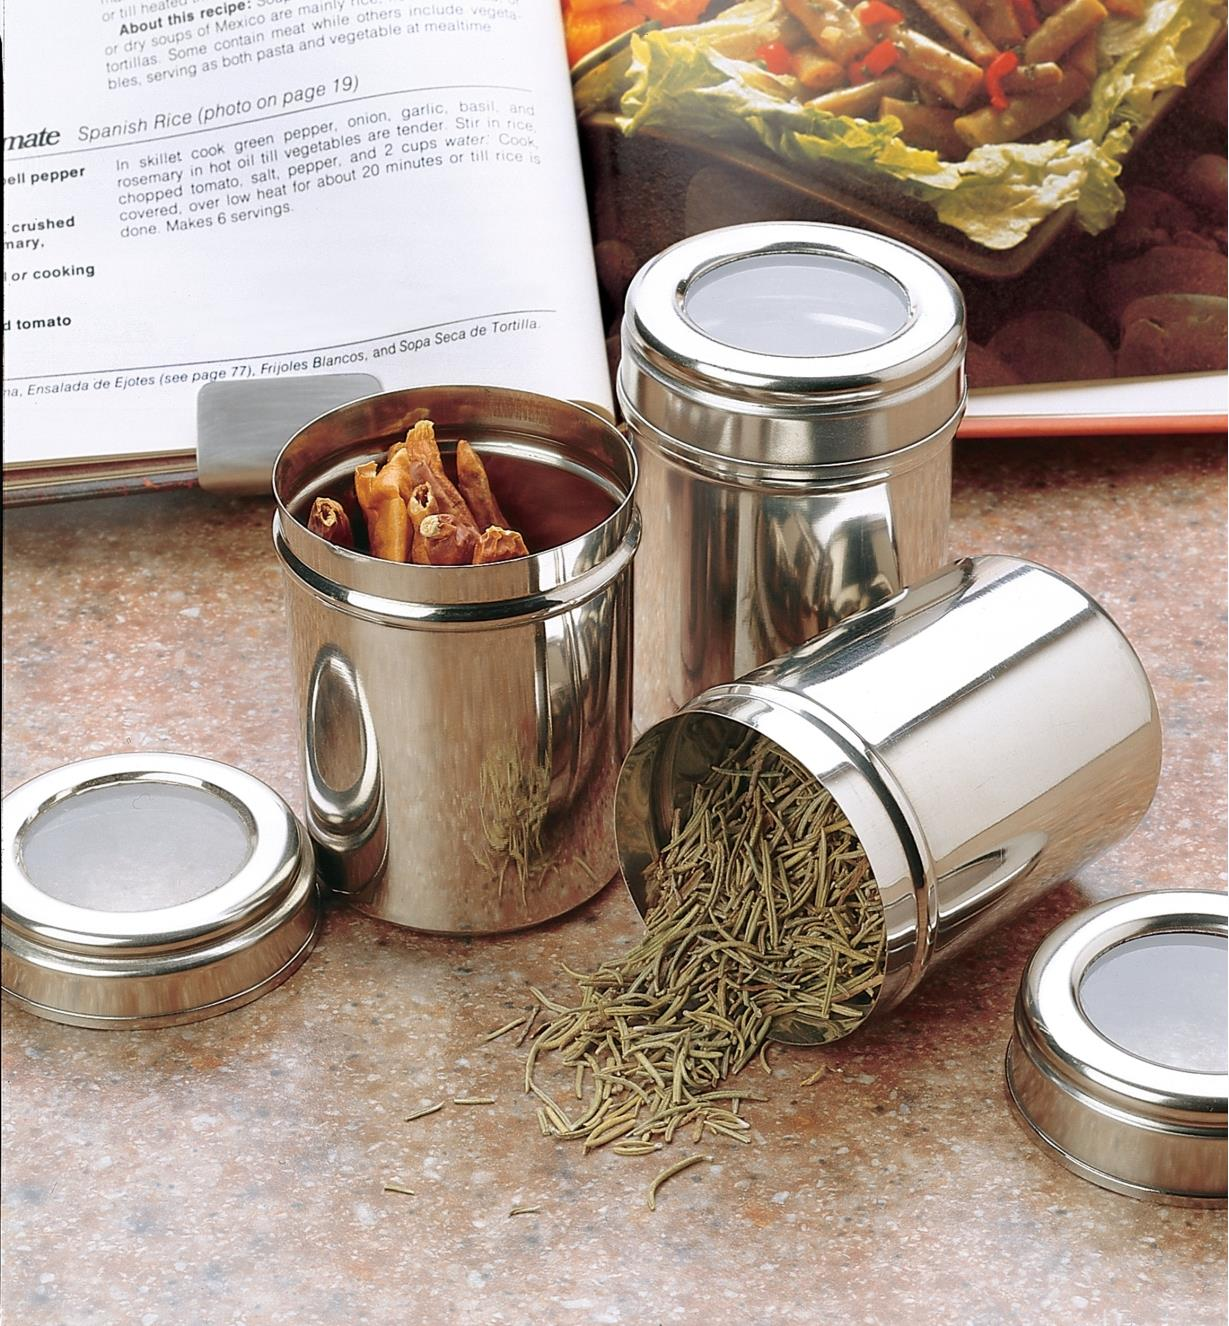 Three Large Canisters holding spices